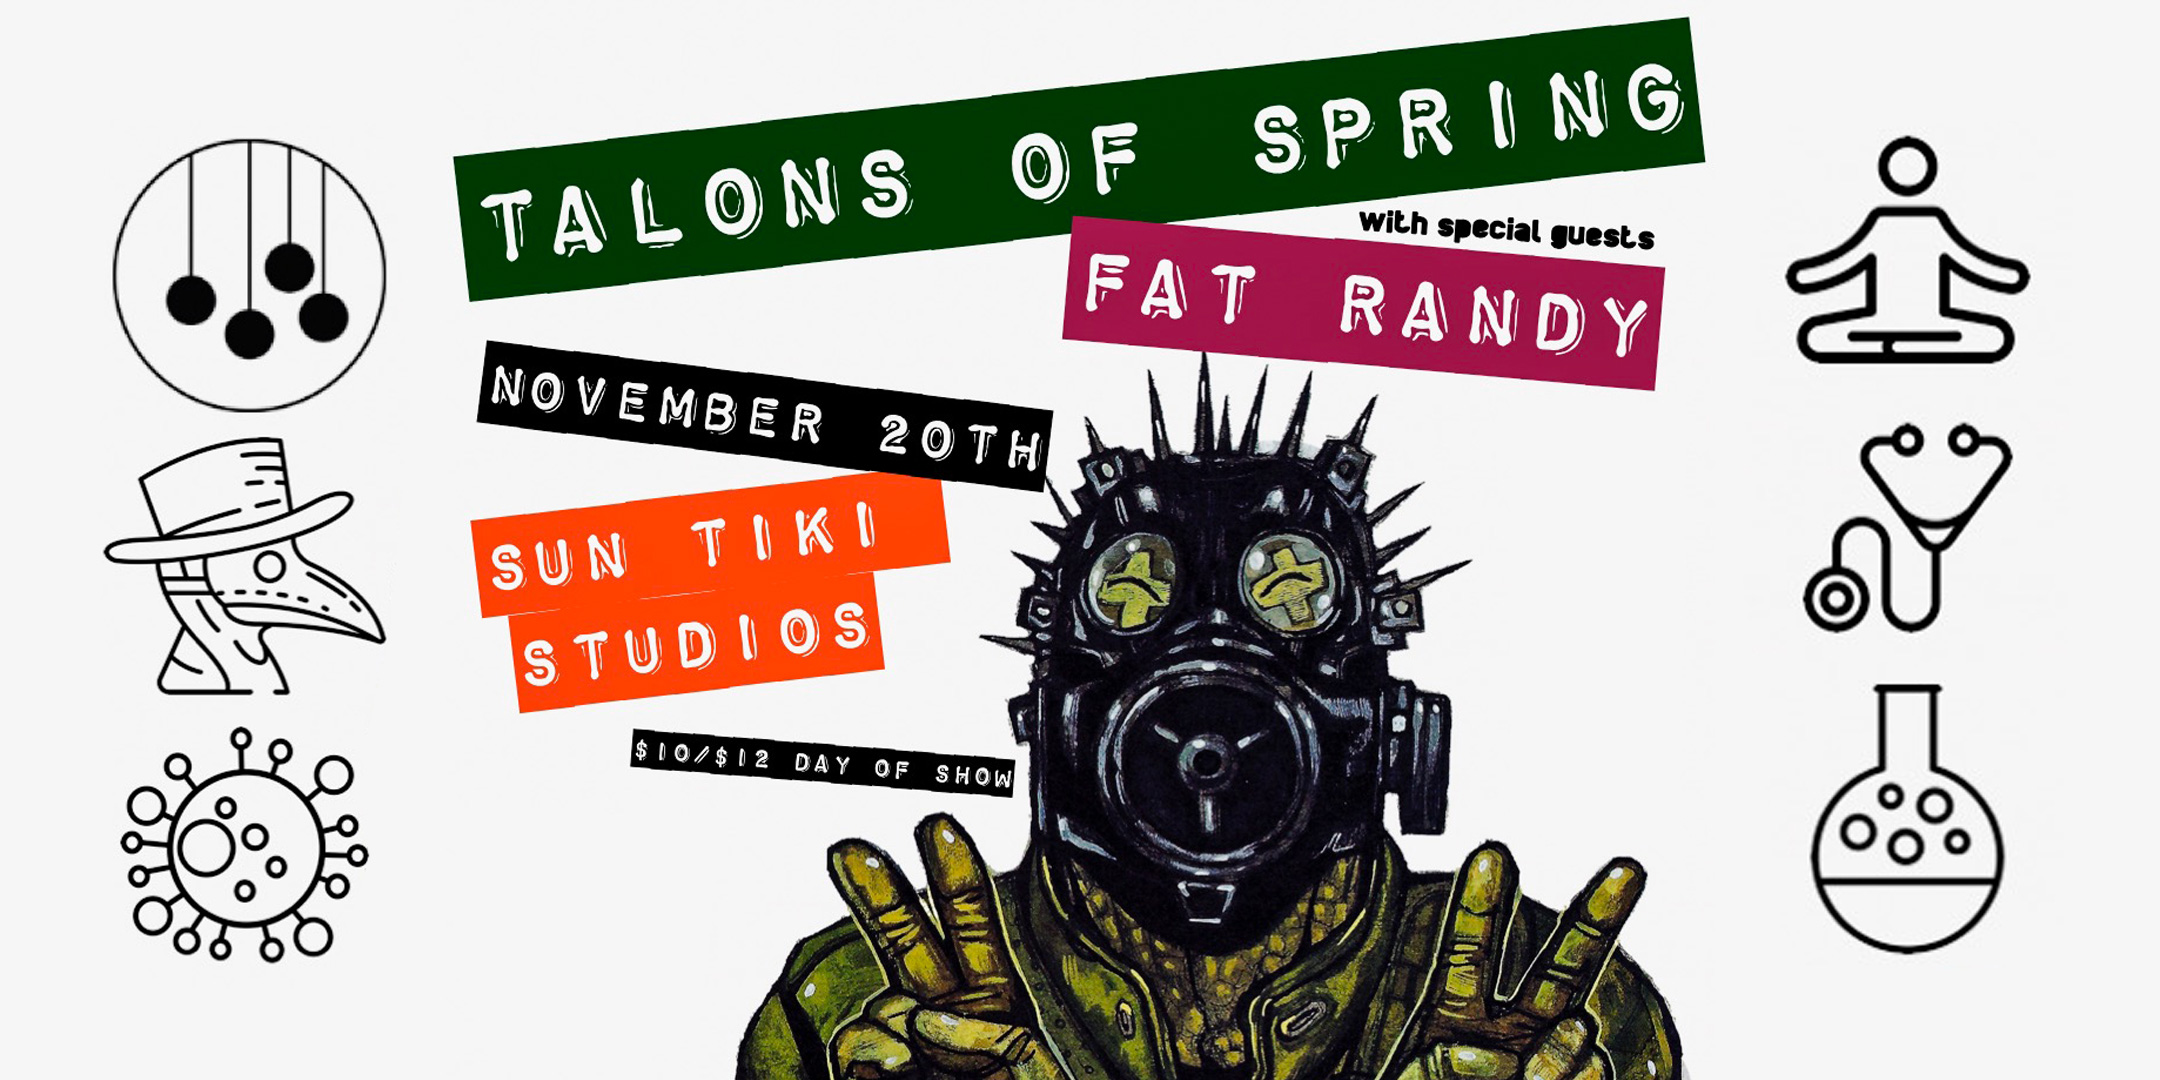 Talons of Spring with Fat Randy